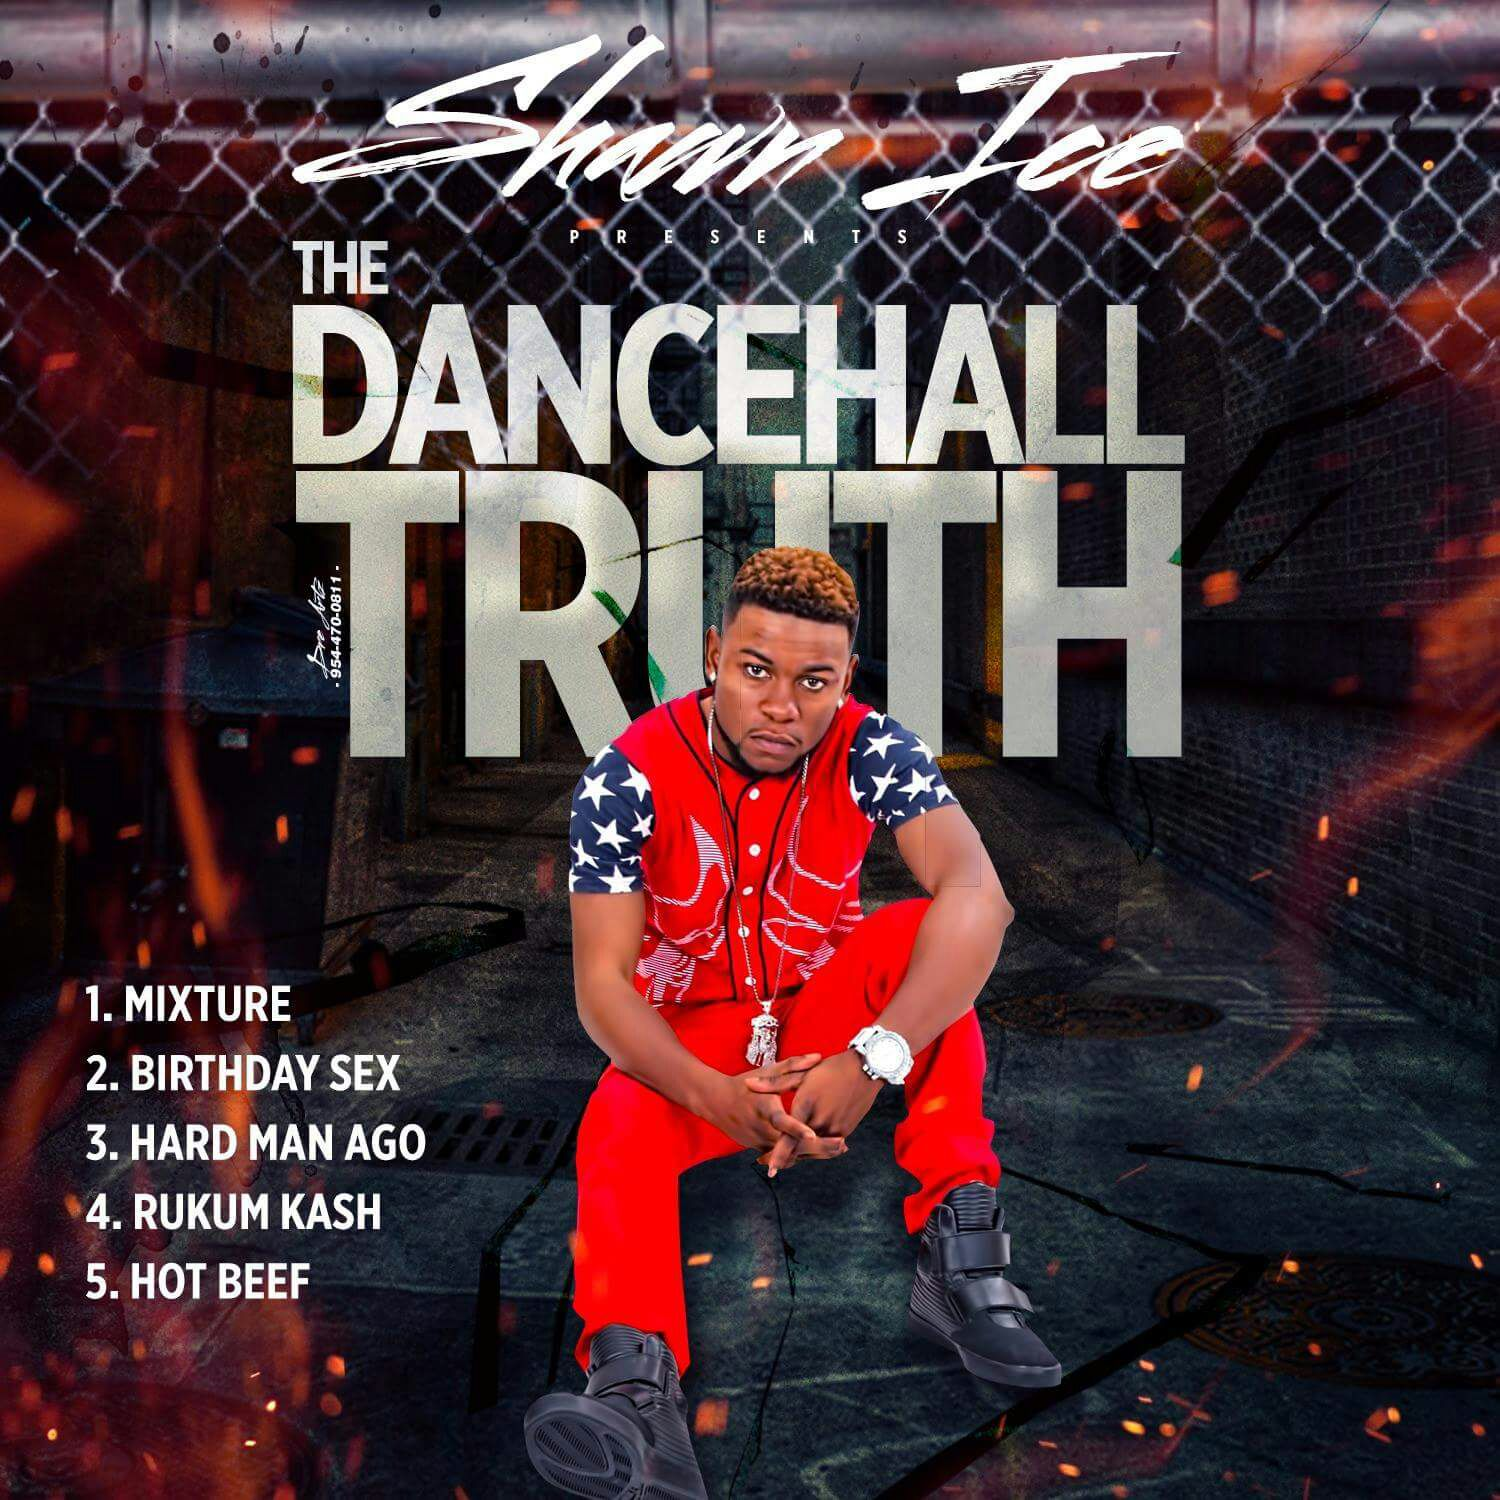 Album cover for dancehall artist Shawn Ice